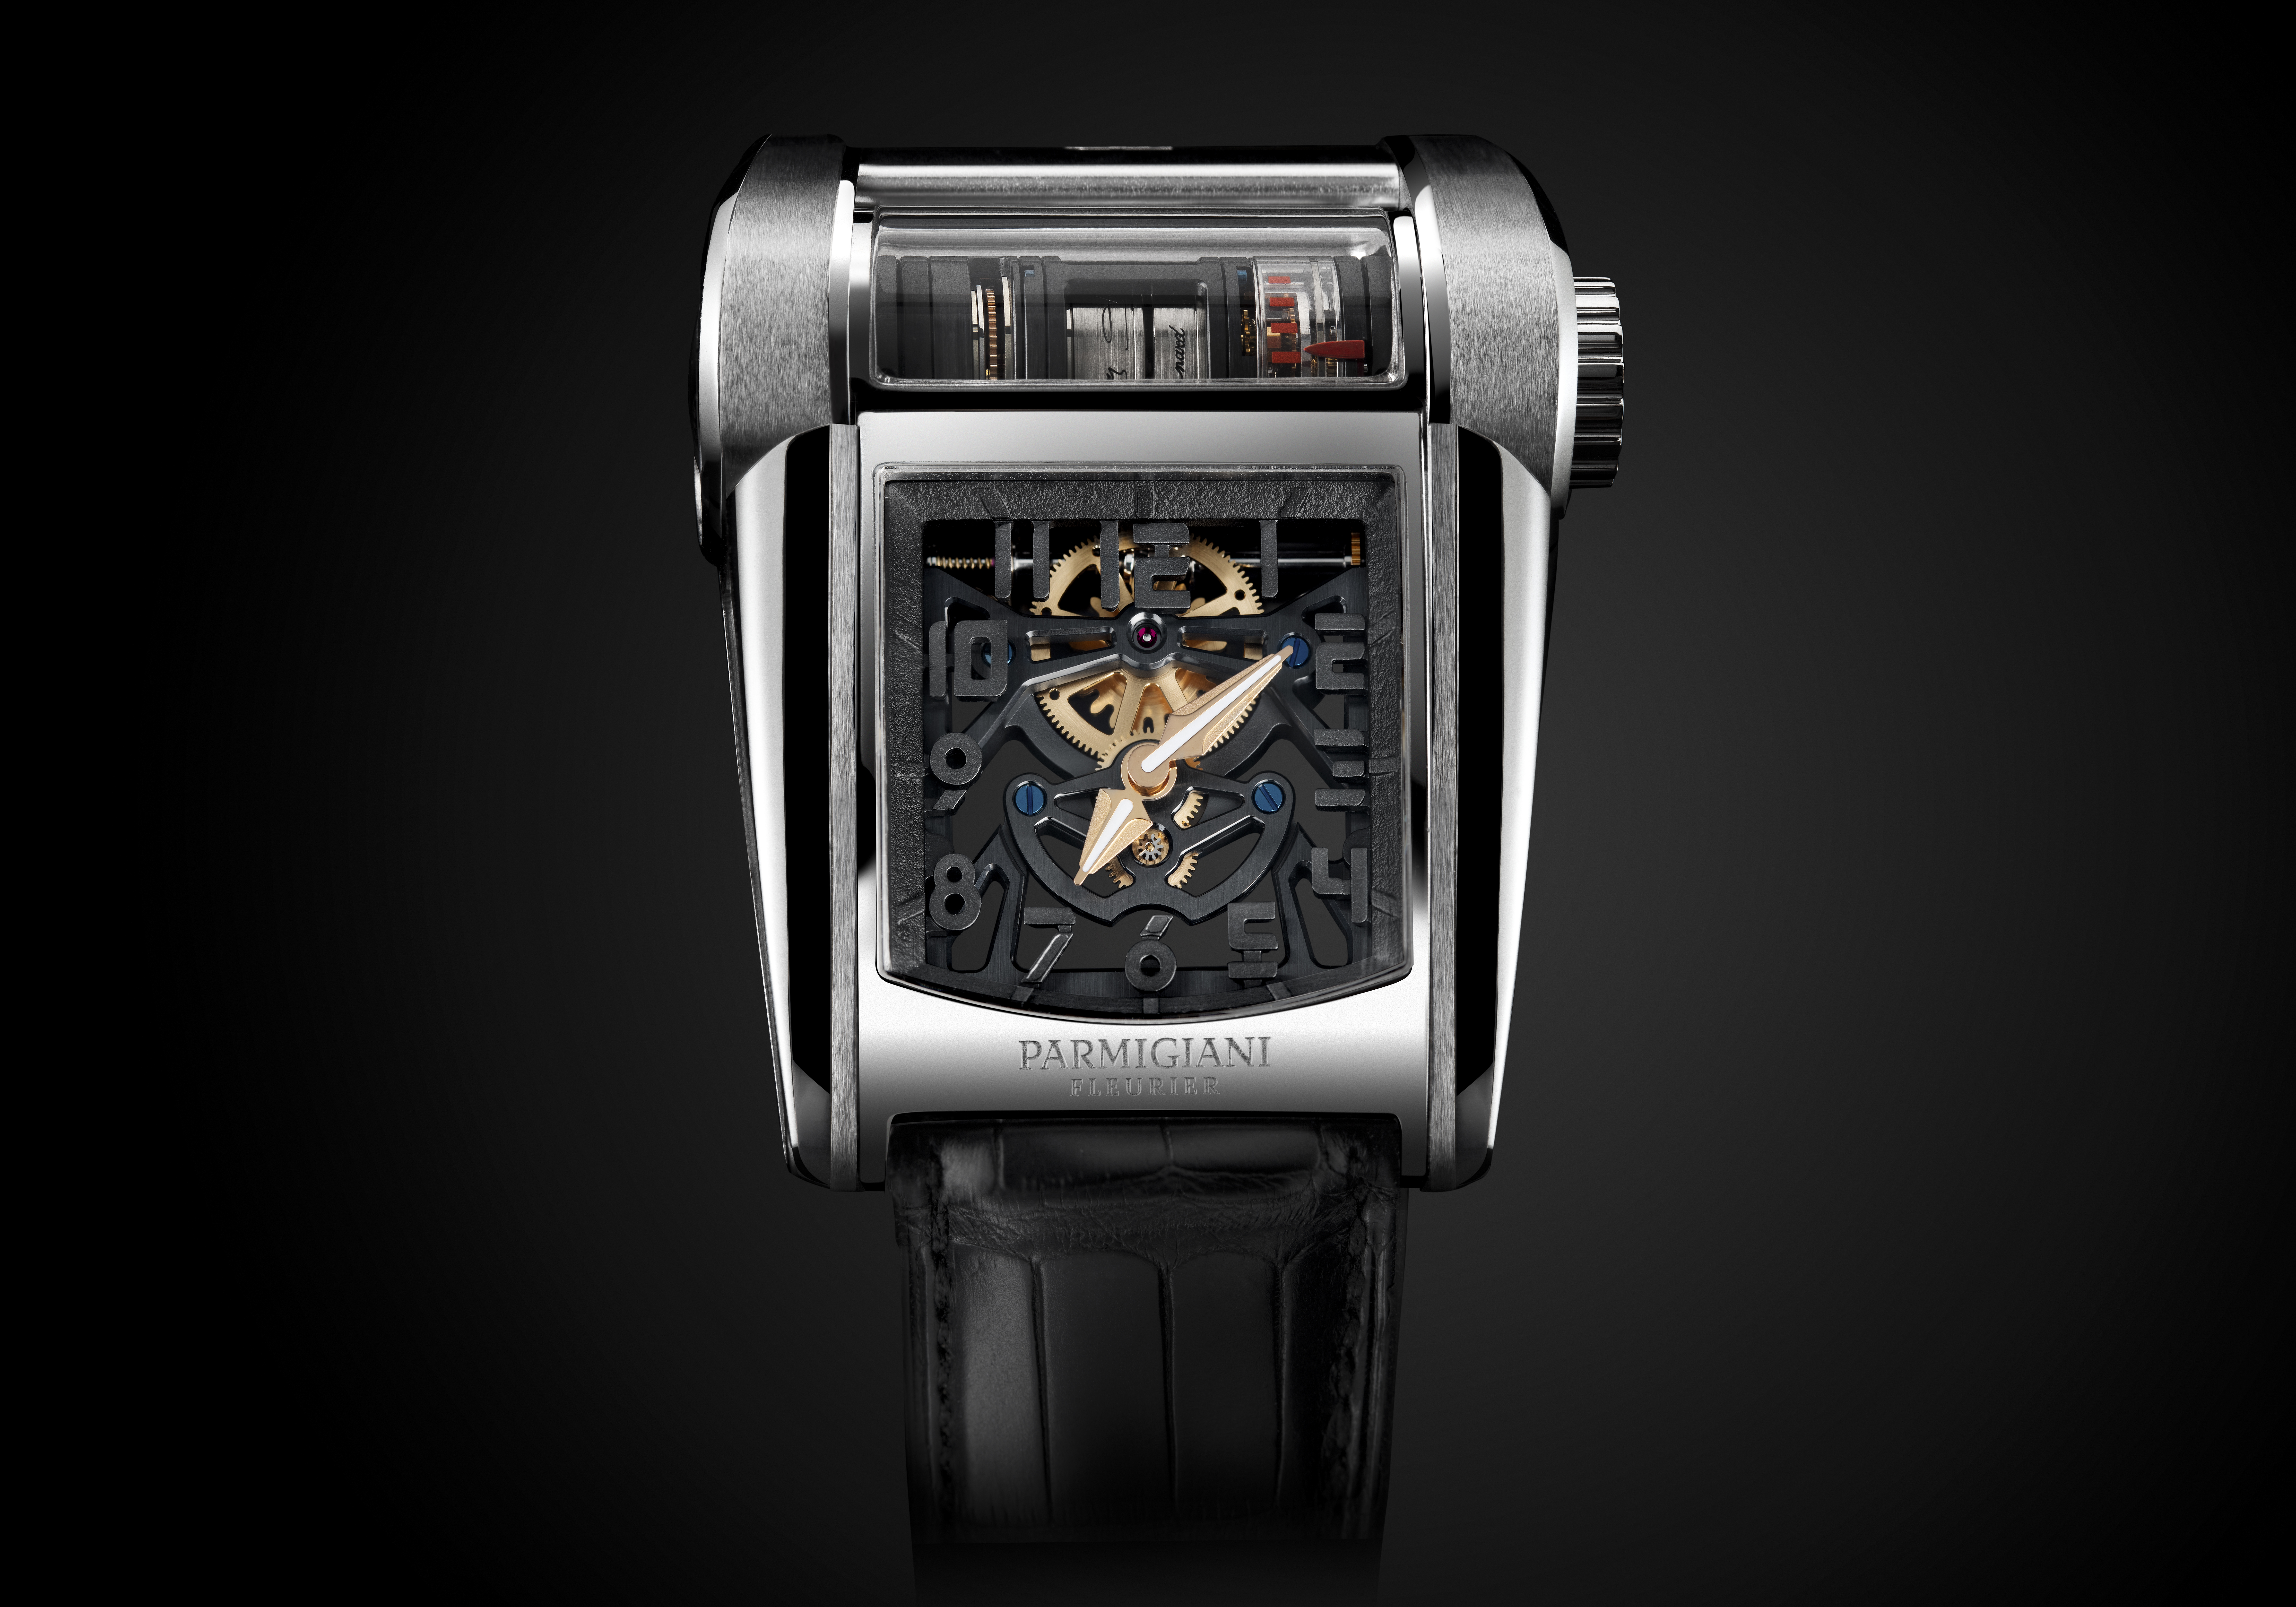 The Parmigiani Fleurier Bugatti Type 390 watch.